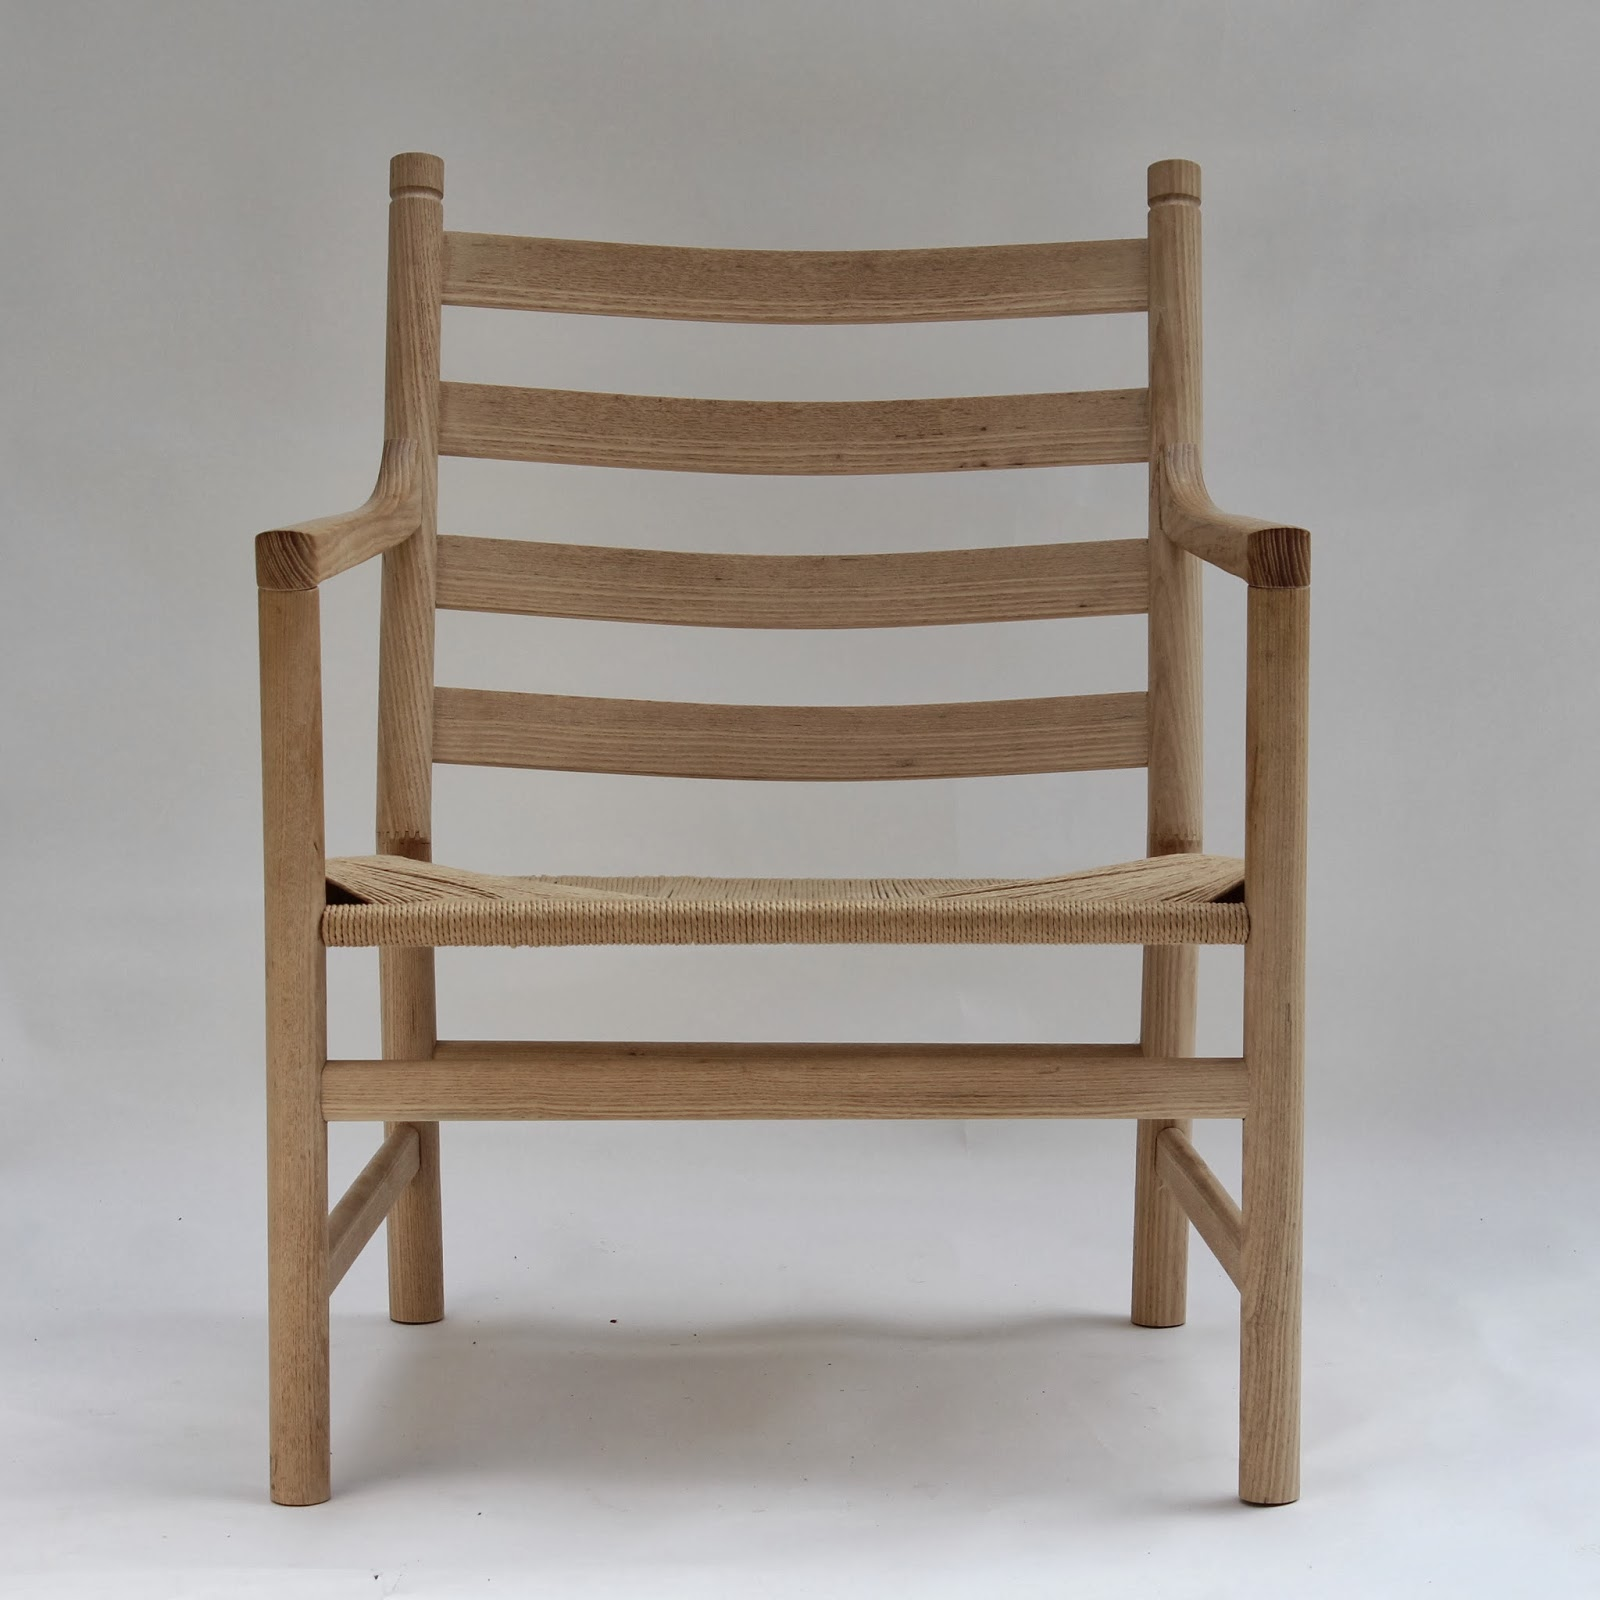 Caleb James Chairmaker Planemaker Danish Modern Chair Joinery